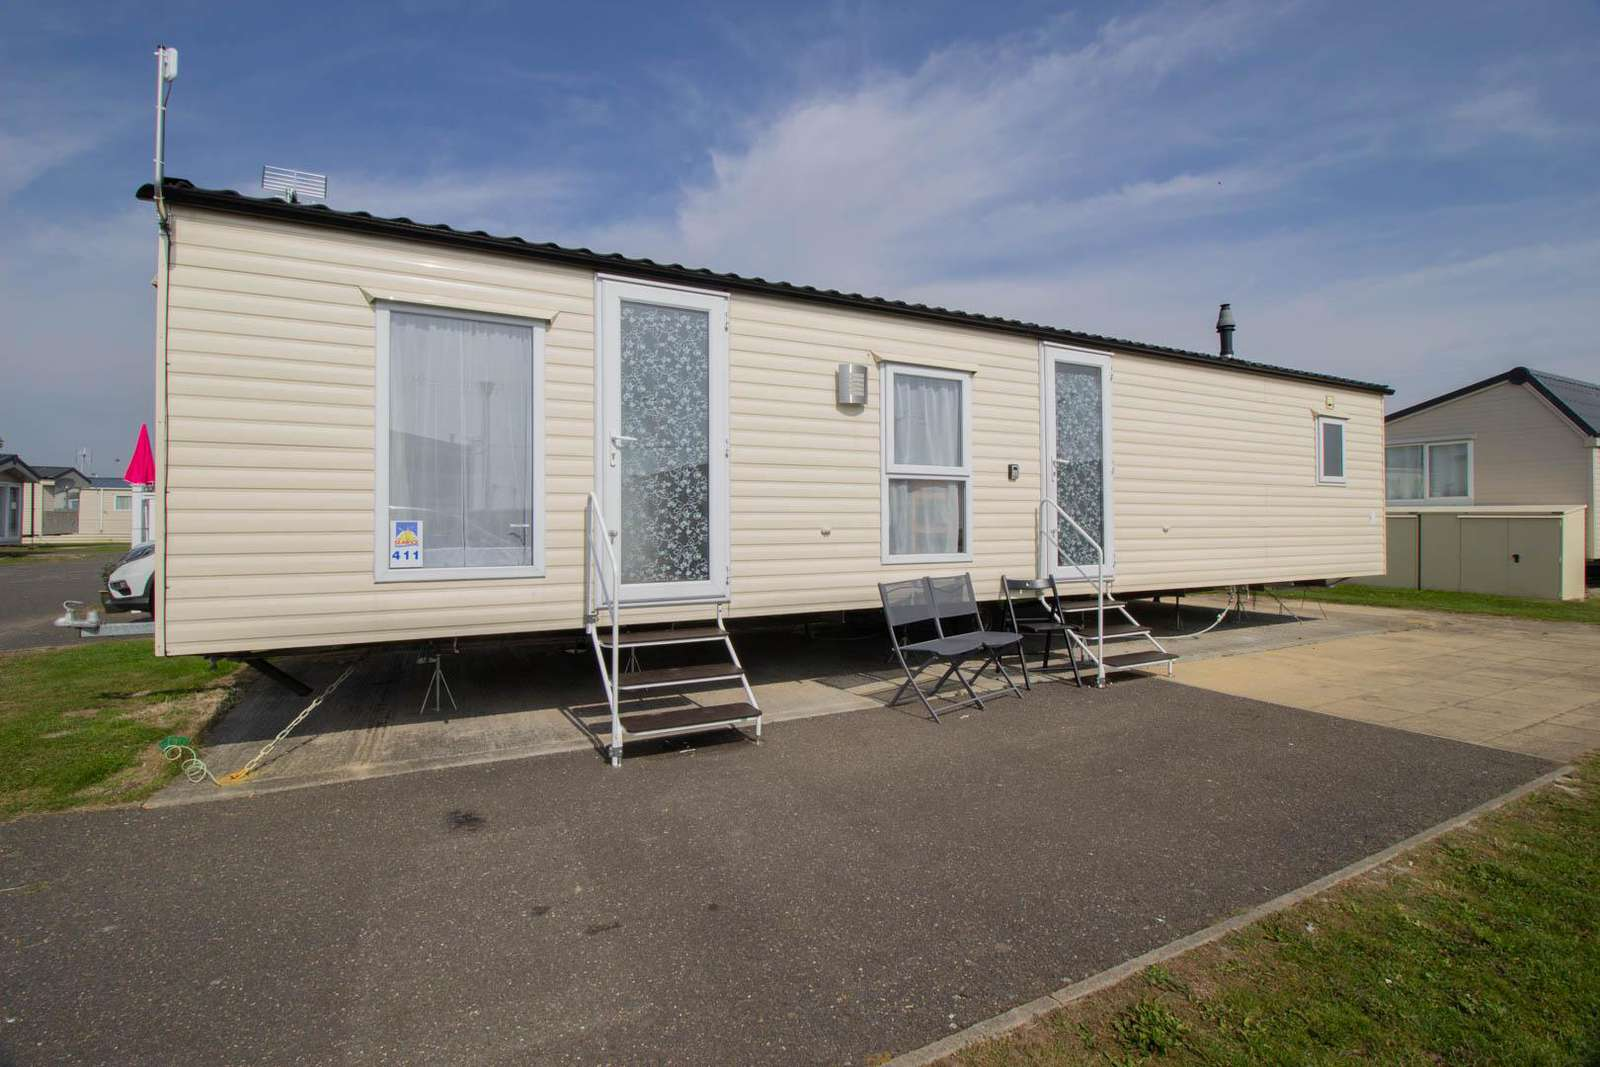 27411S – Seawick, 3 bed, 8 berth caravan with D/G & C/H. Ruby rated. - property